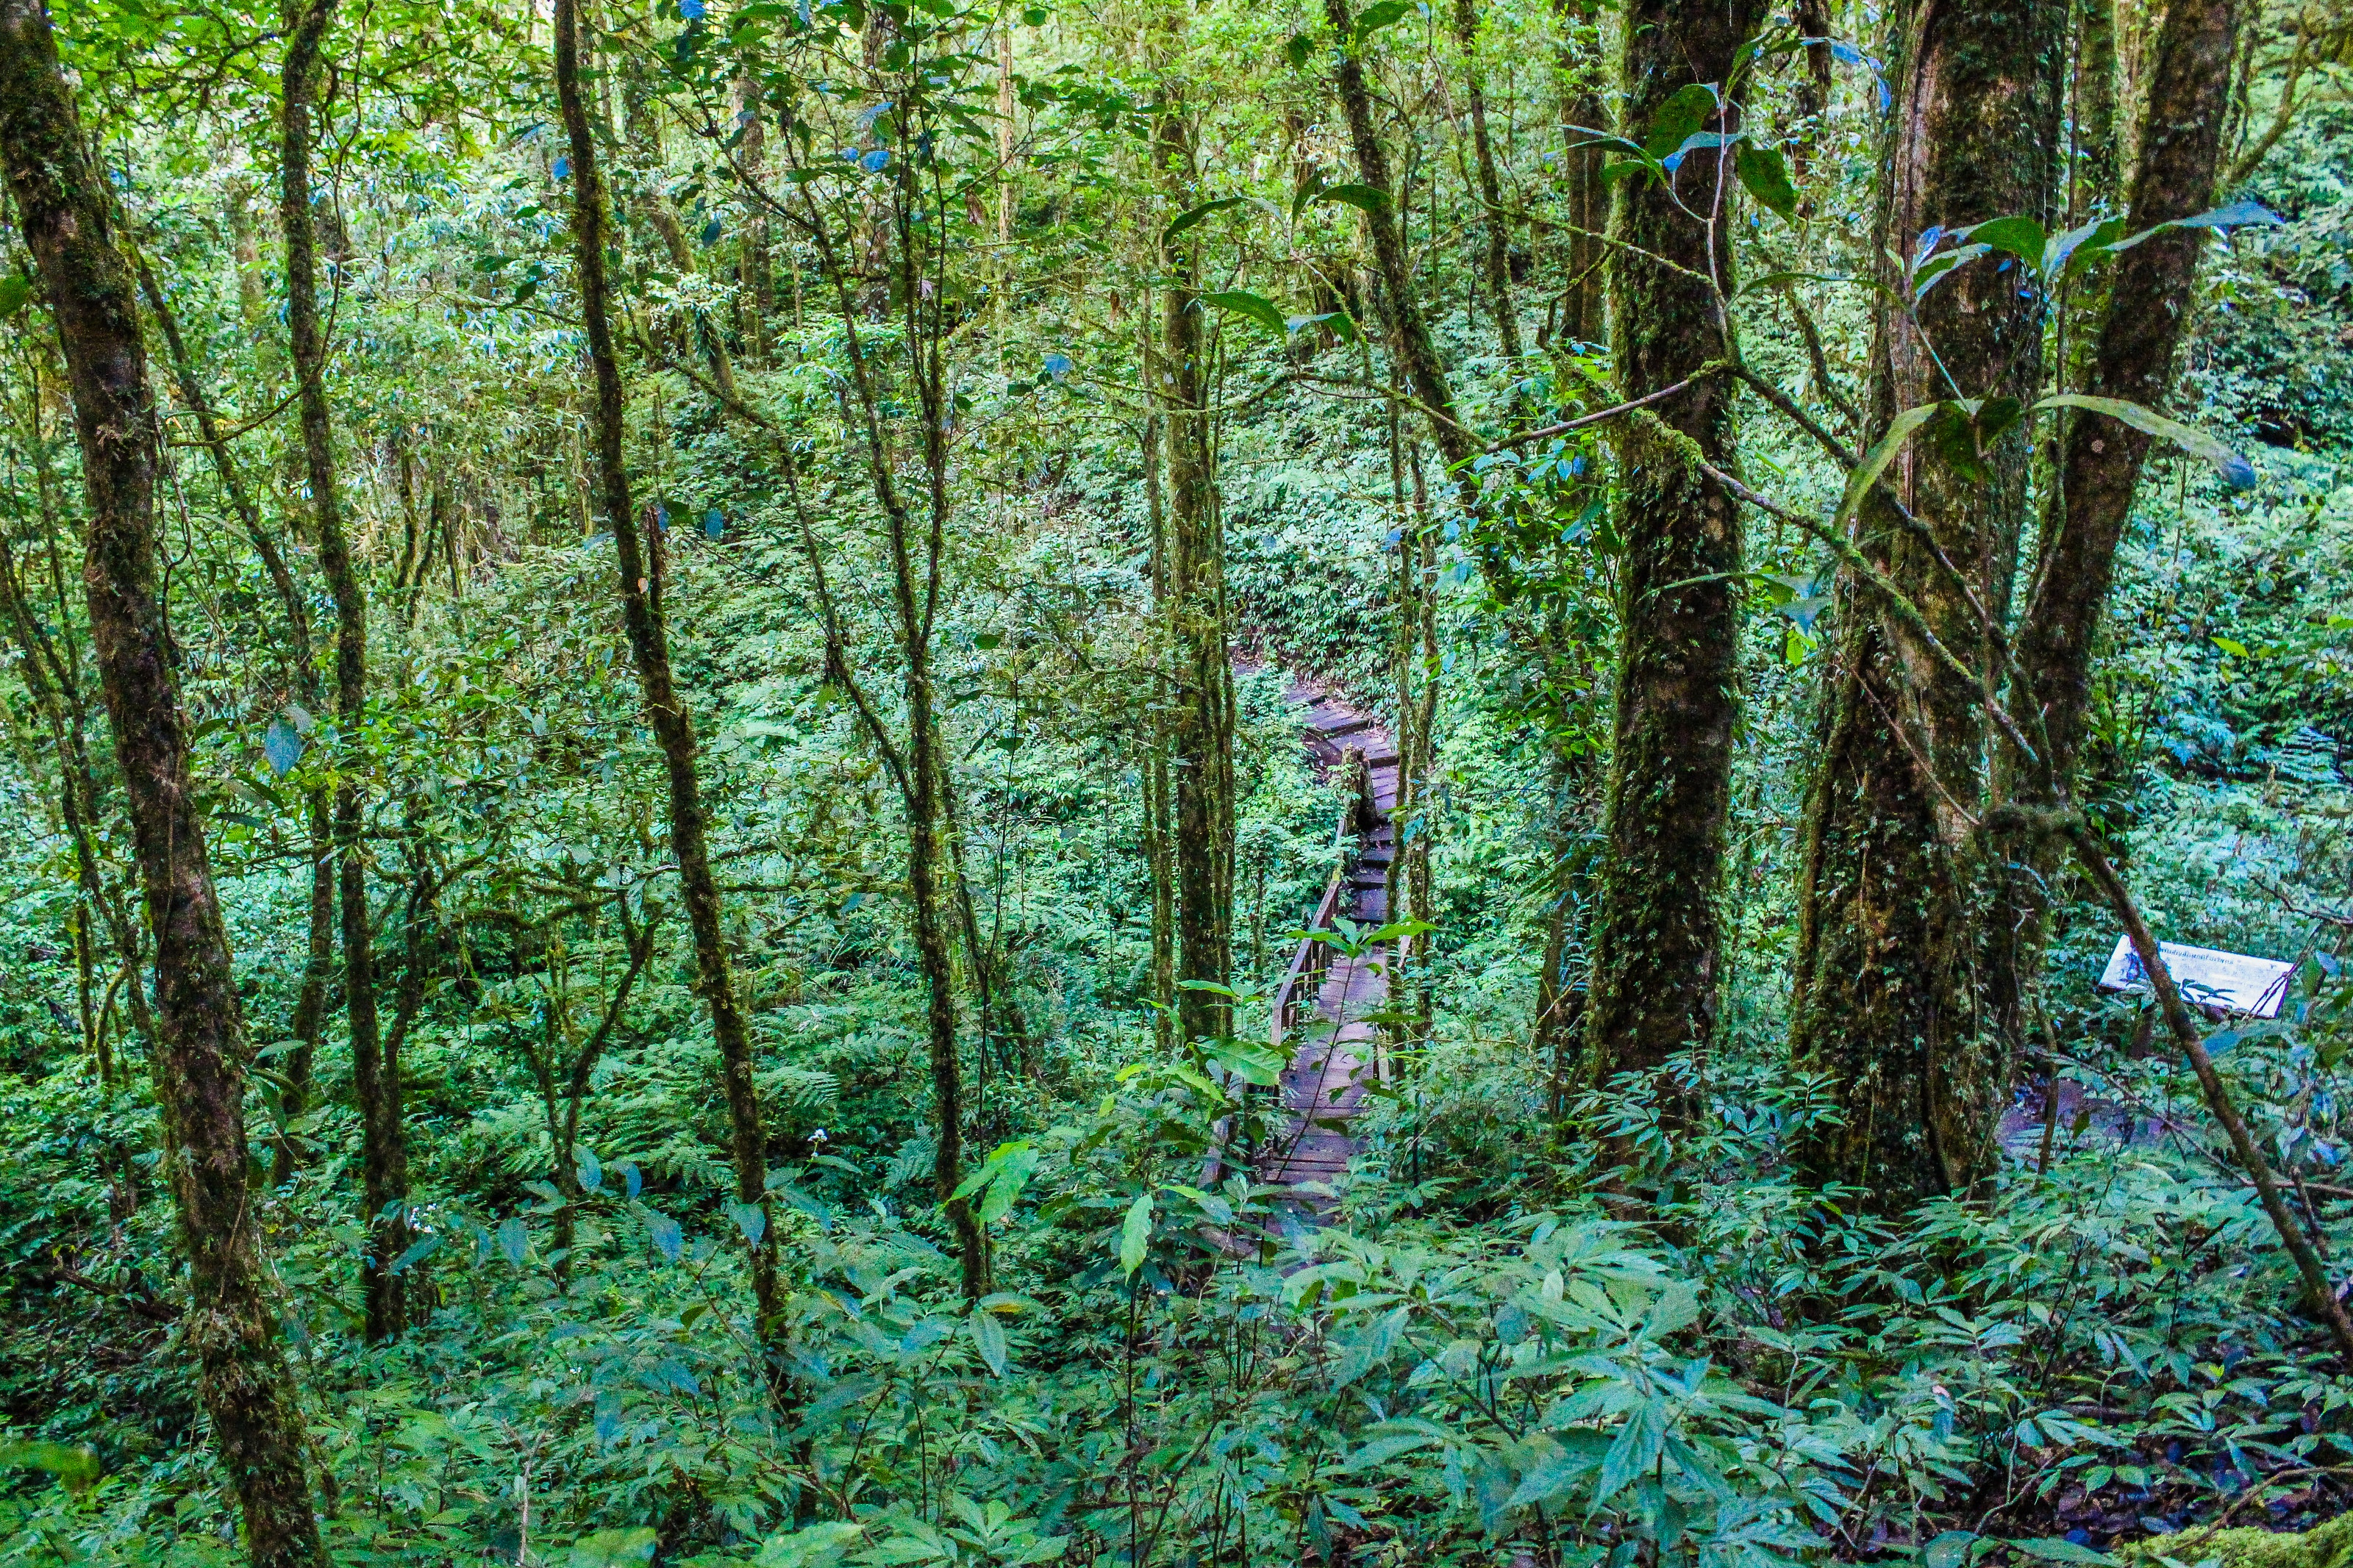 Forest With Green Plants and Trees, Adventure, Nature, Vacation, Trunk, HQ Photo